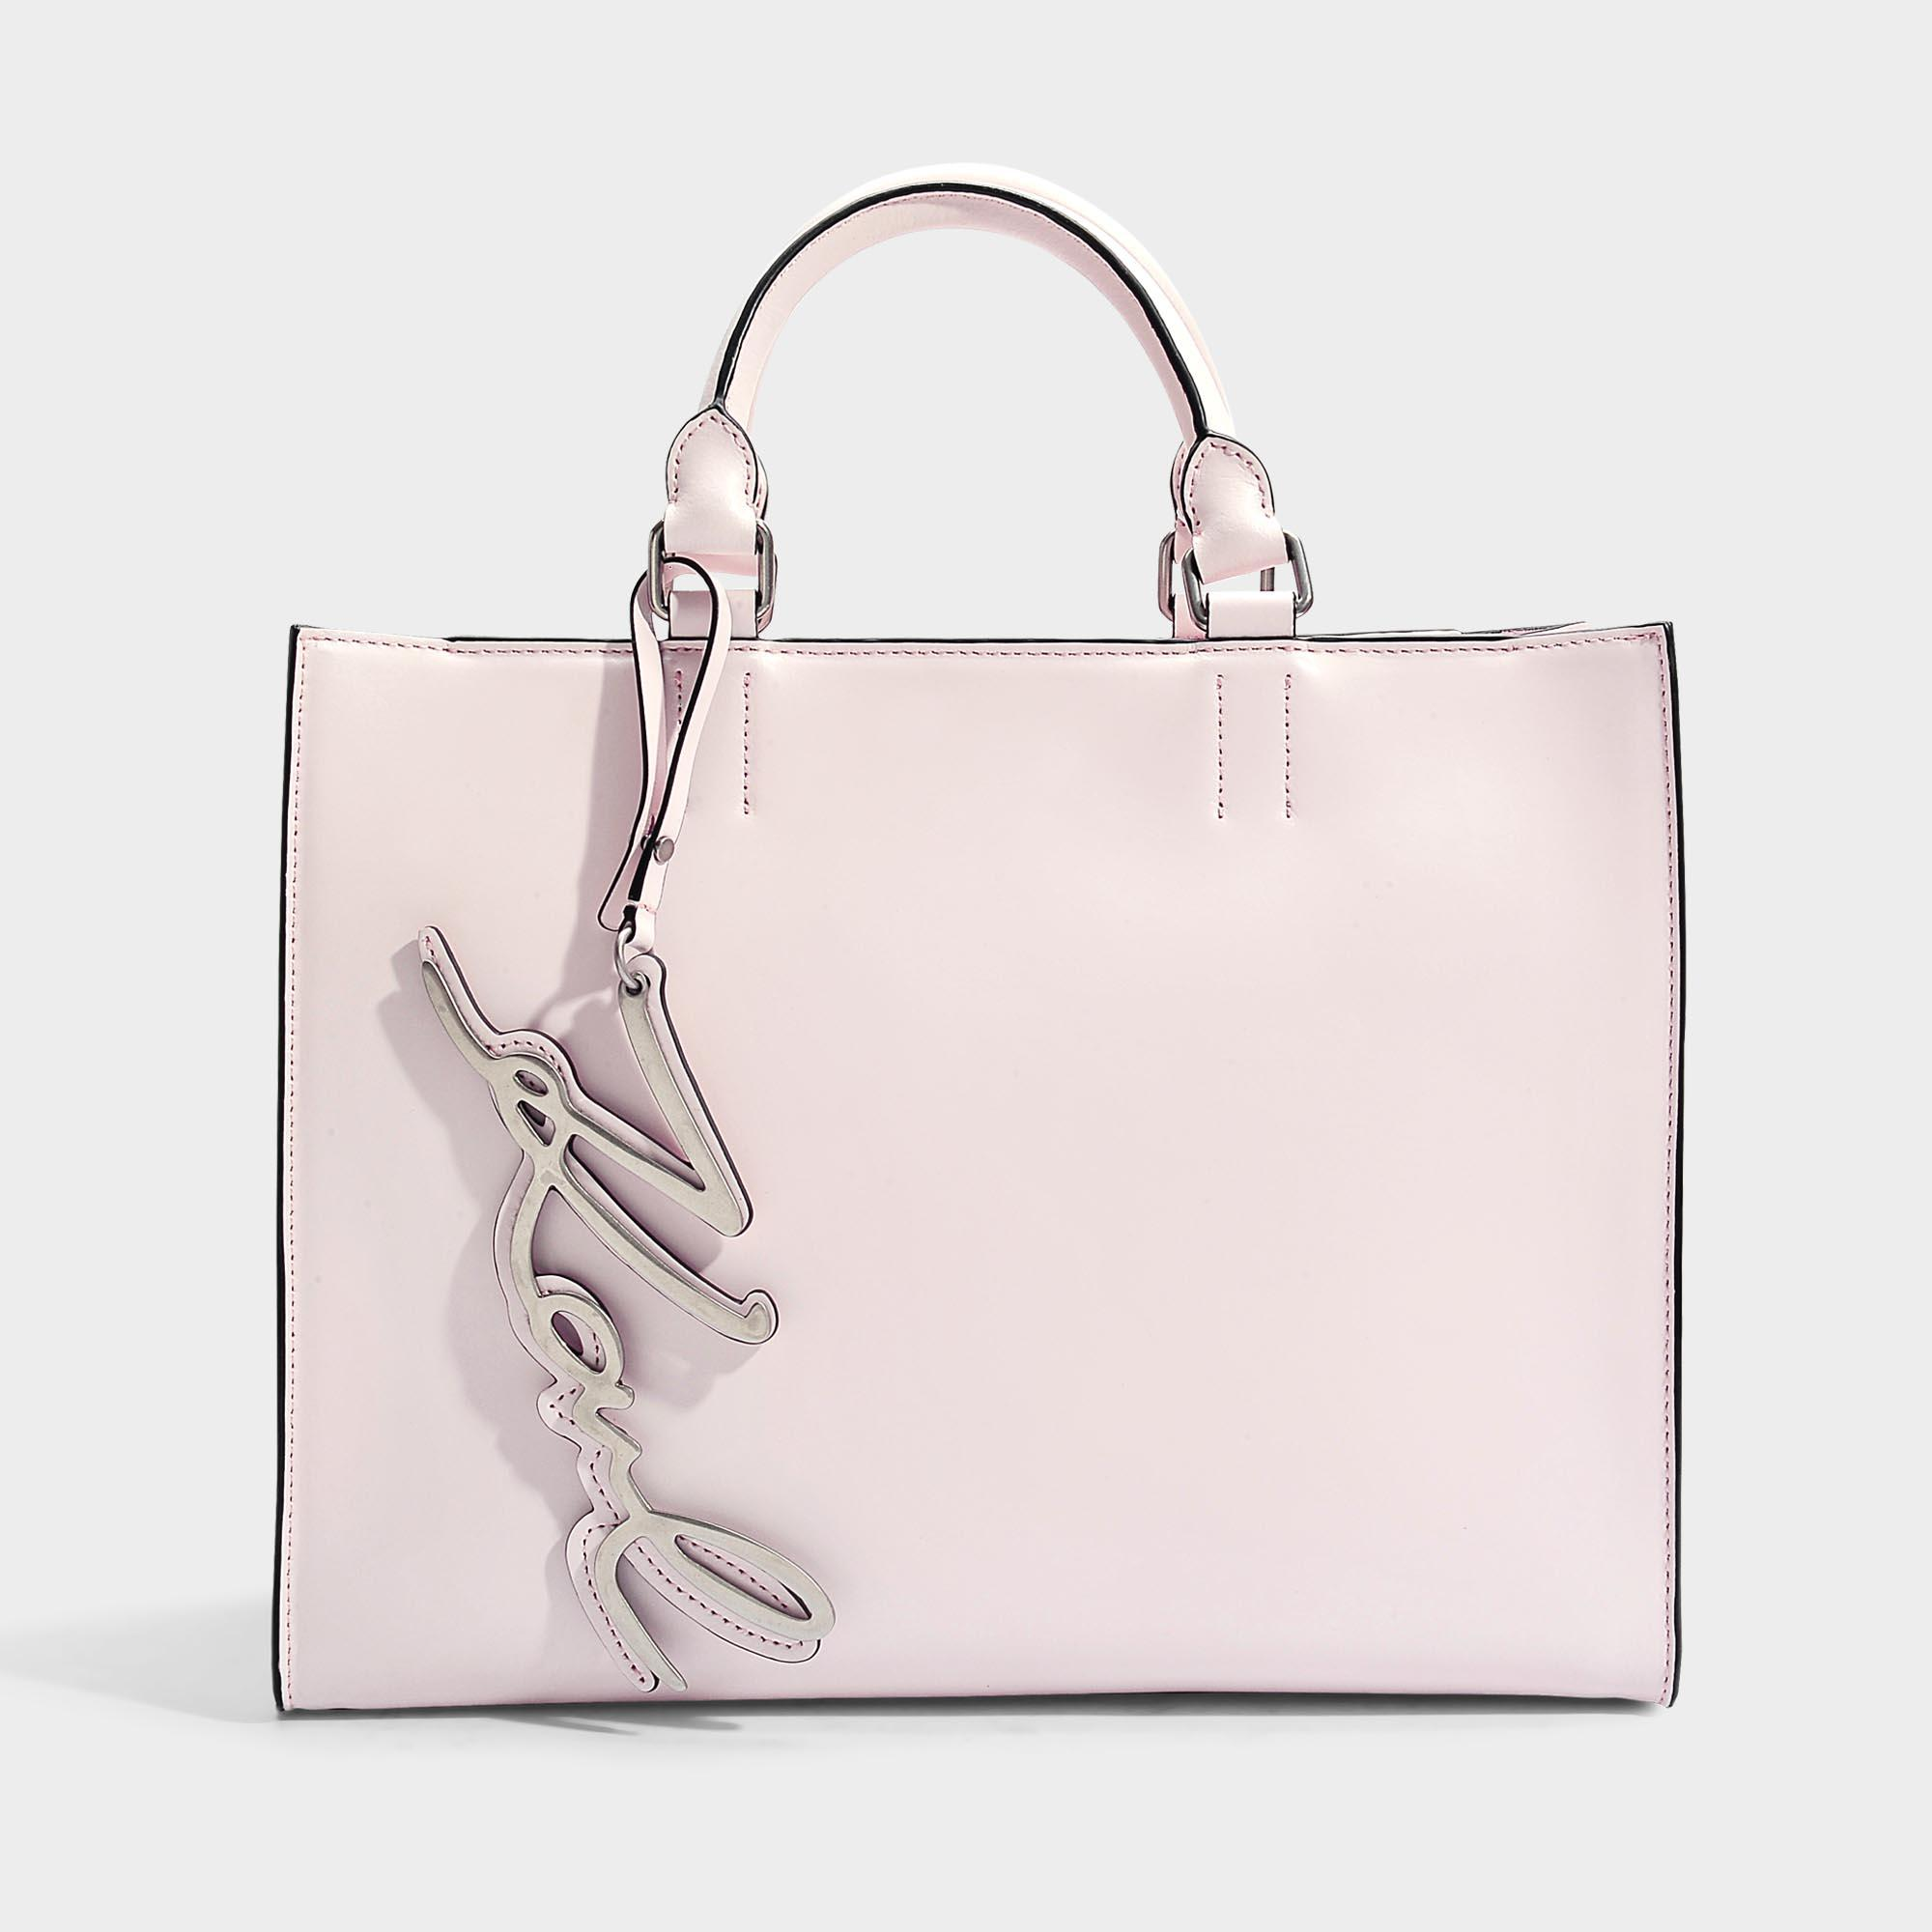 MM6 Maison Margiela Sac Shopper en Cuir Synthétique Embossé Serpent Lamé Rose